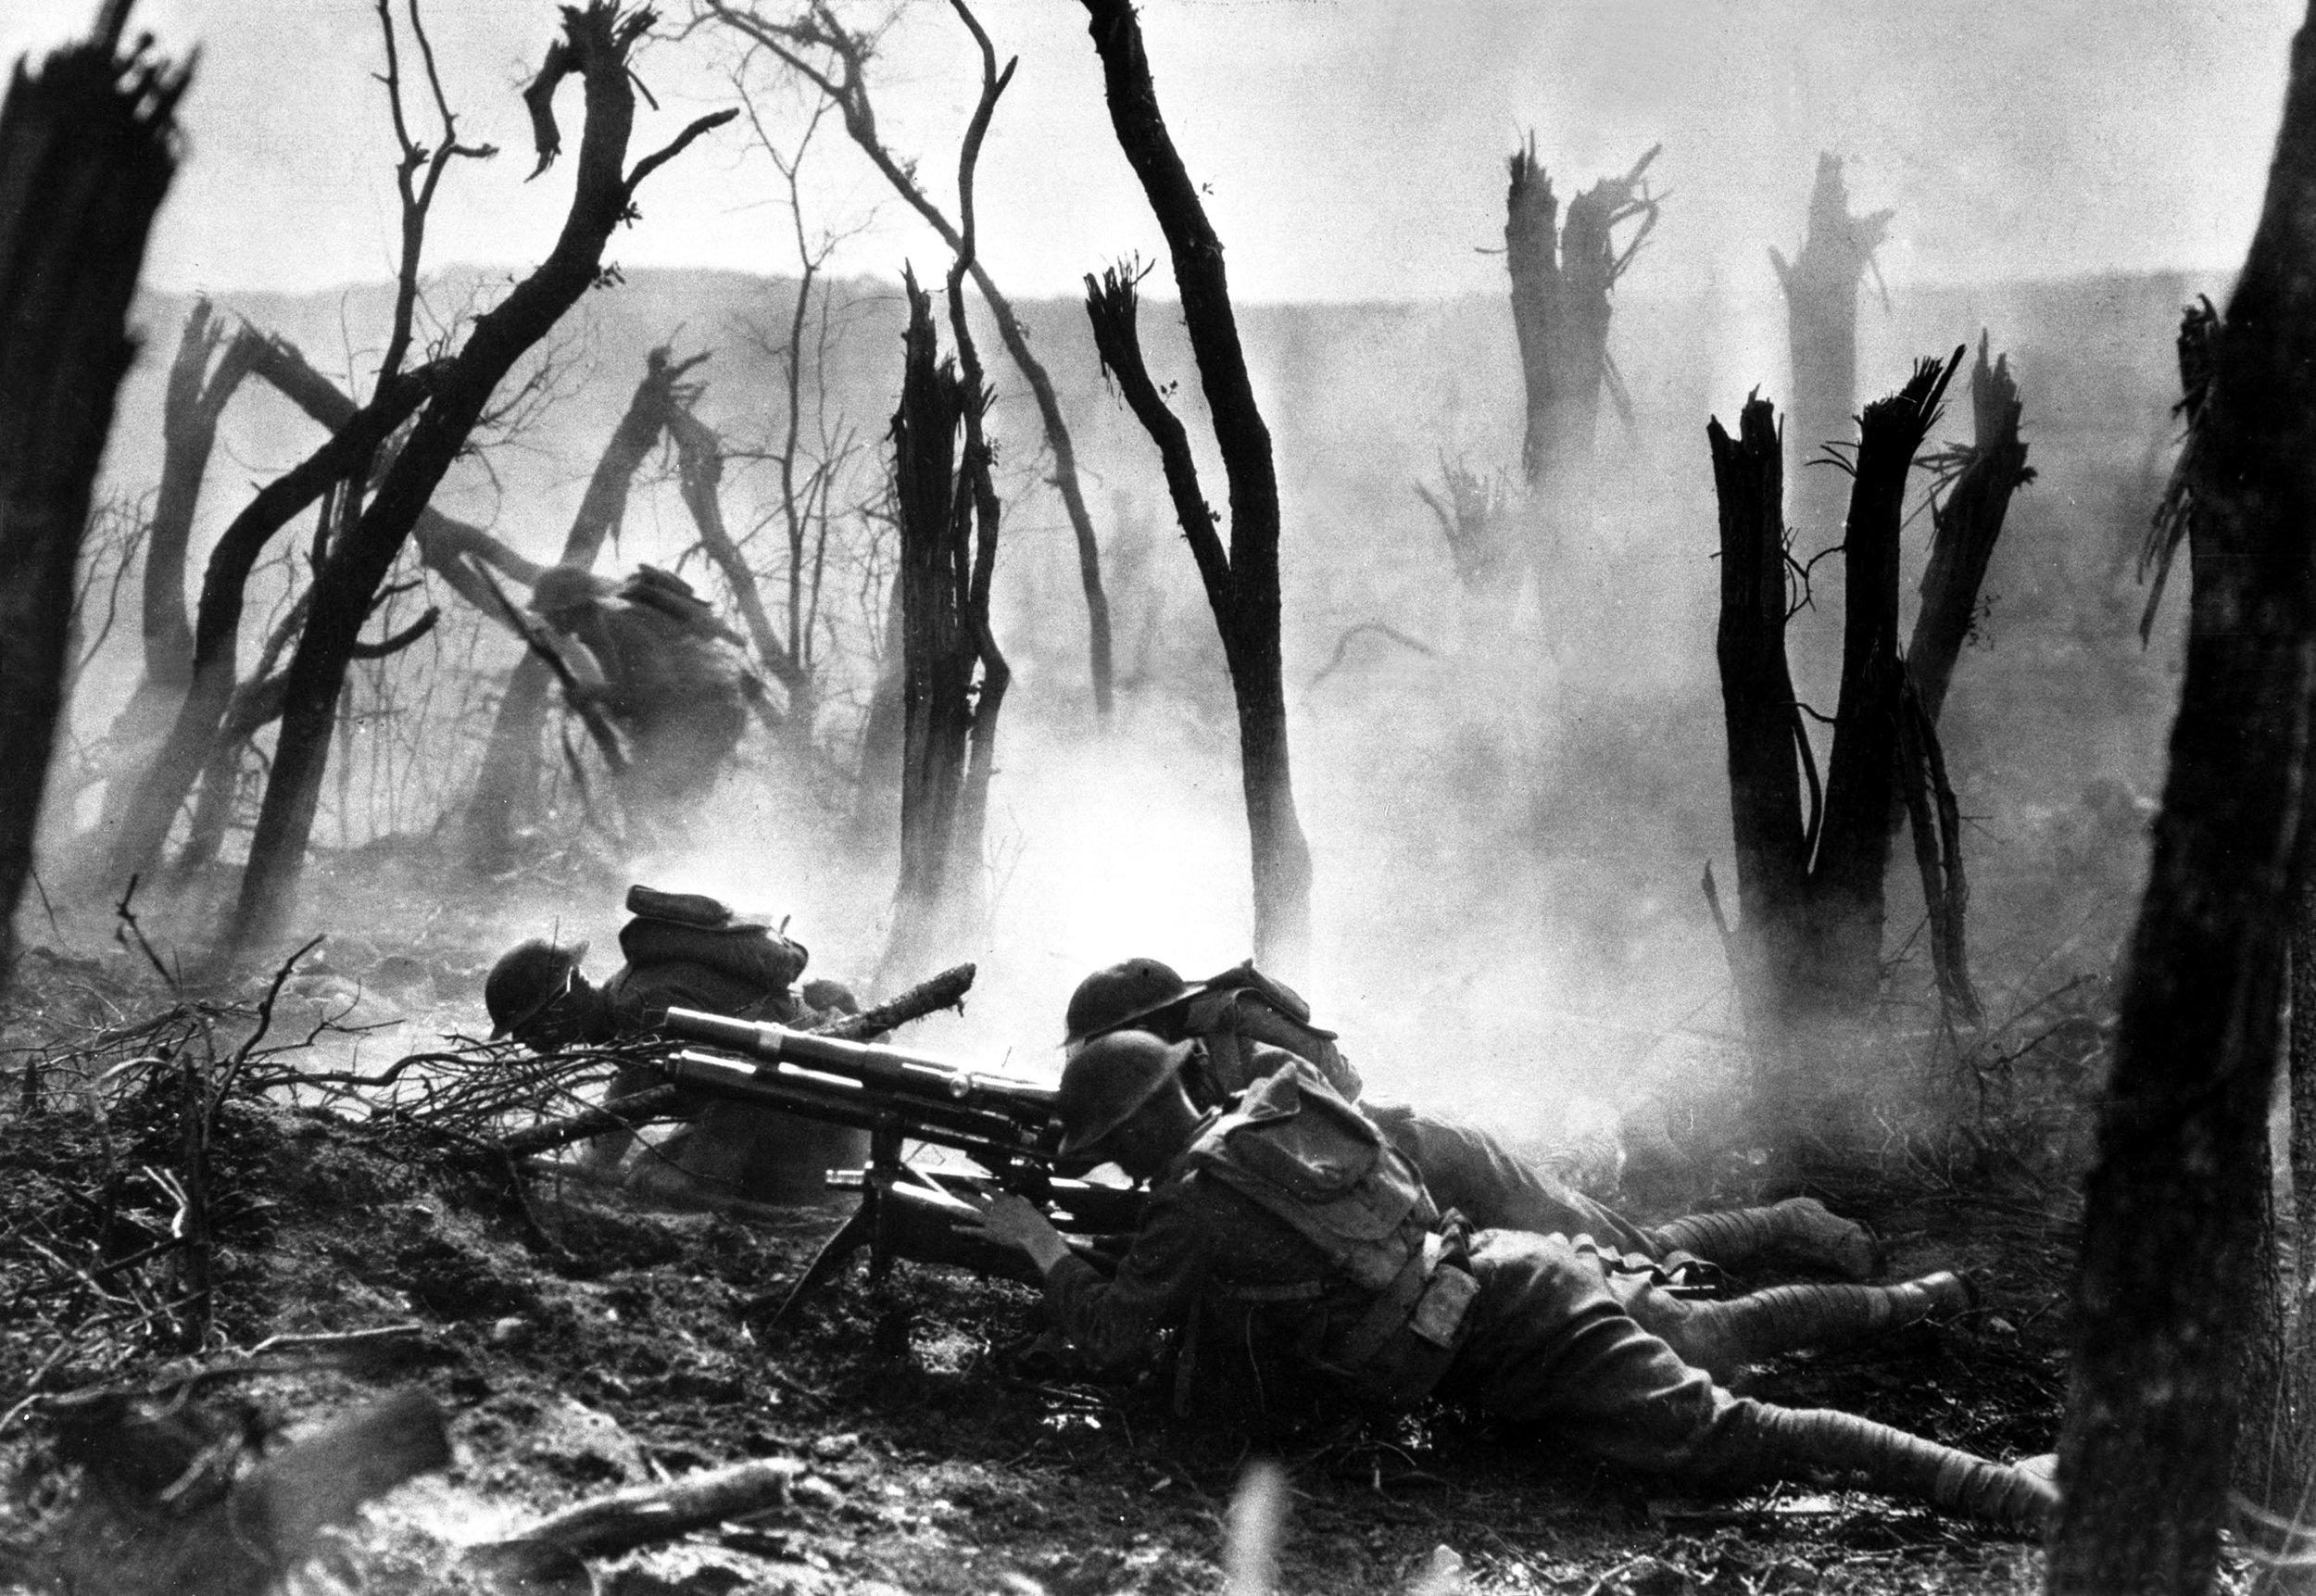 The Meuse-Argonne Offensive - The largest battle in American history: 47 days, 26,277 killed, 95,786 wounded, (30+ percent by CW).